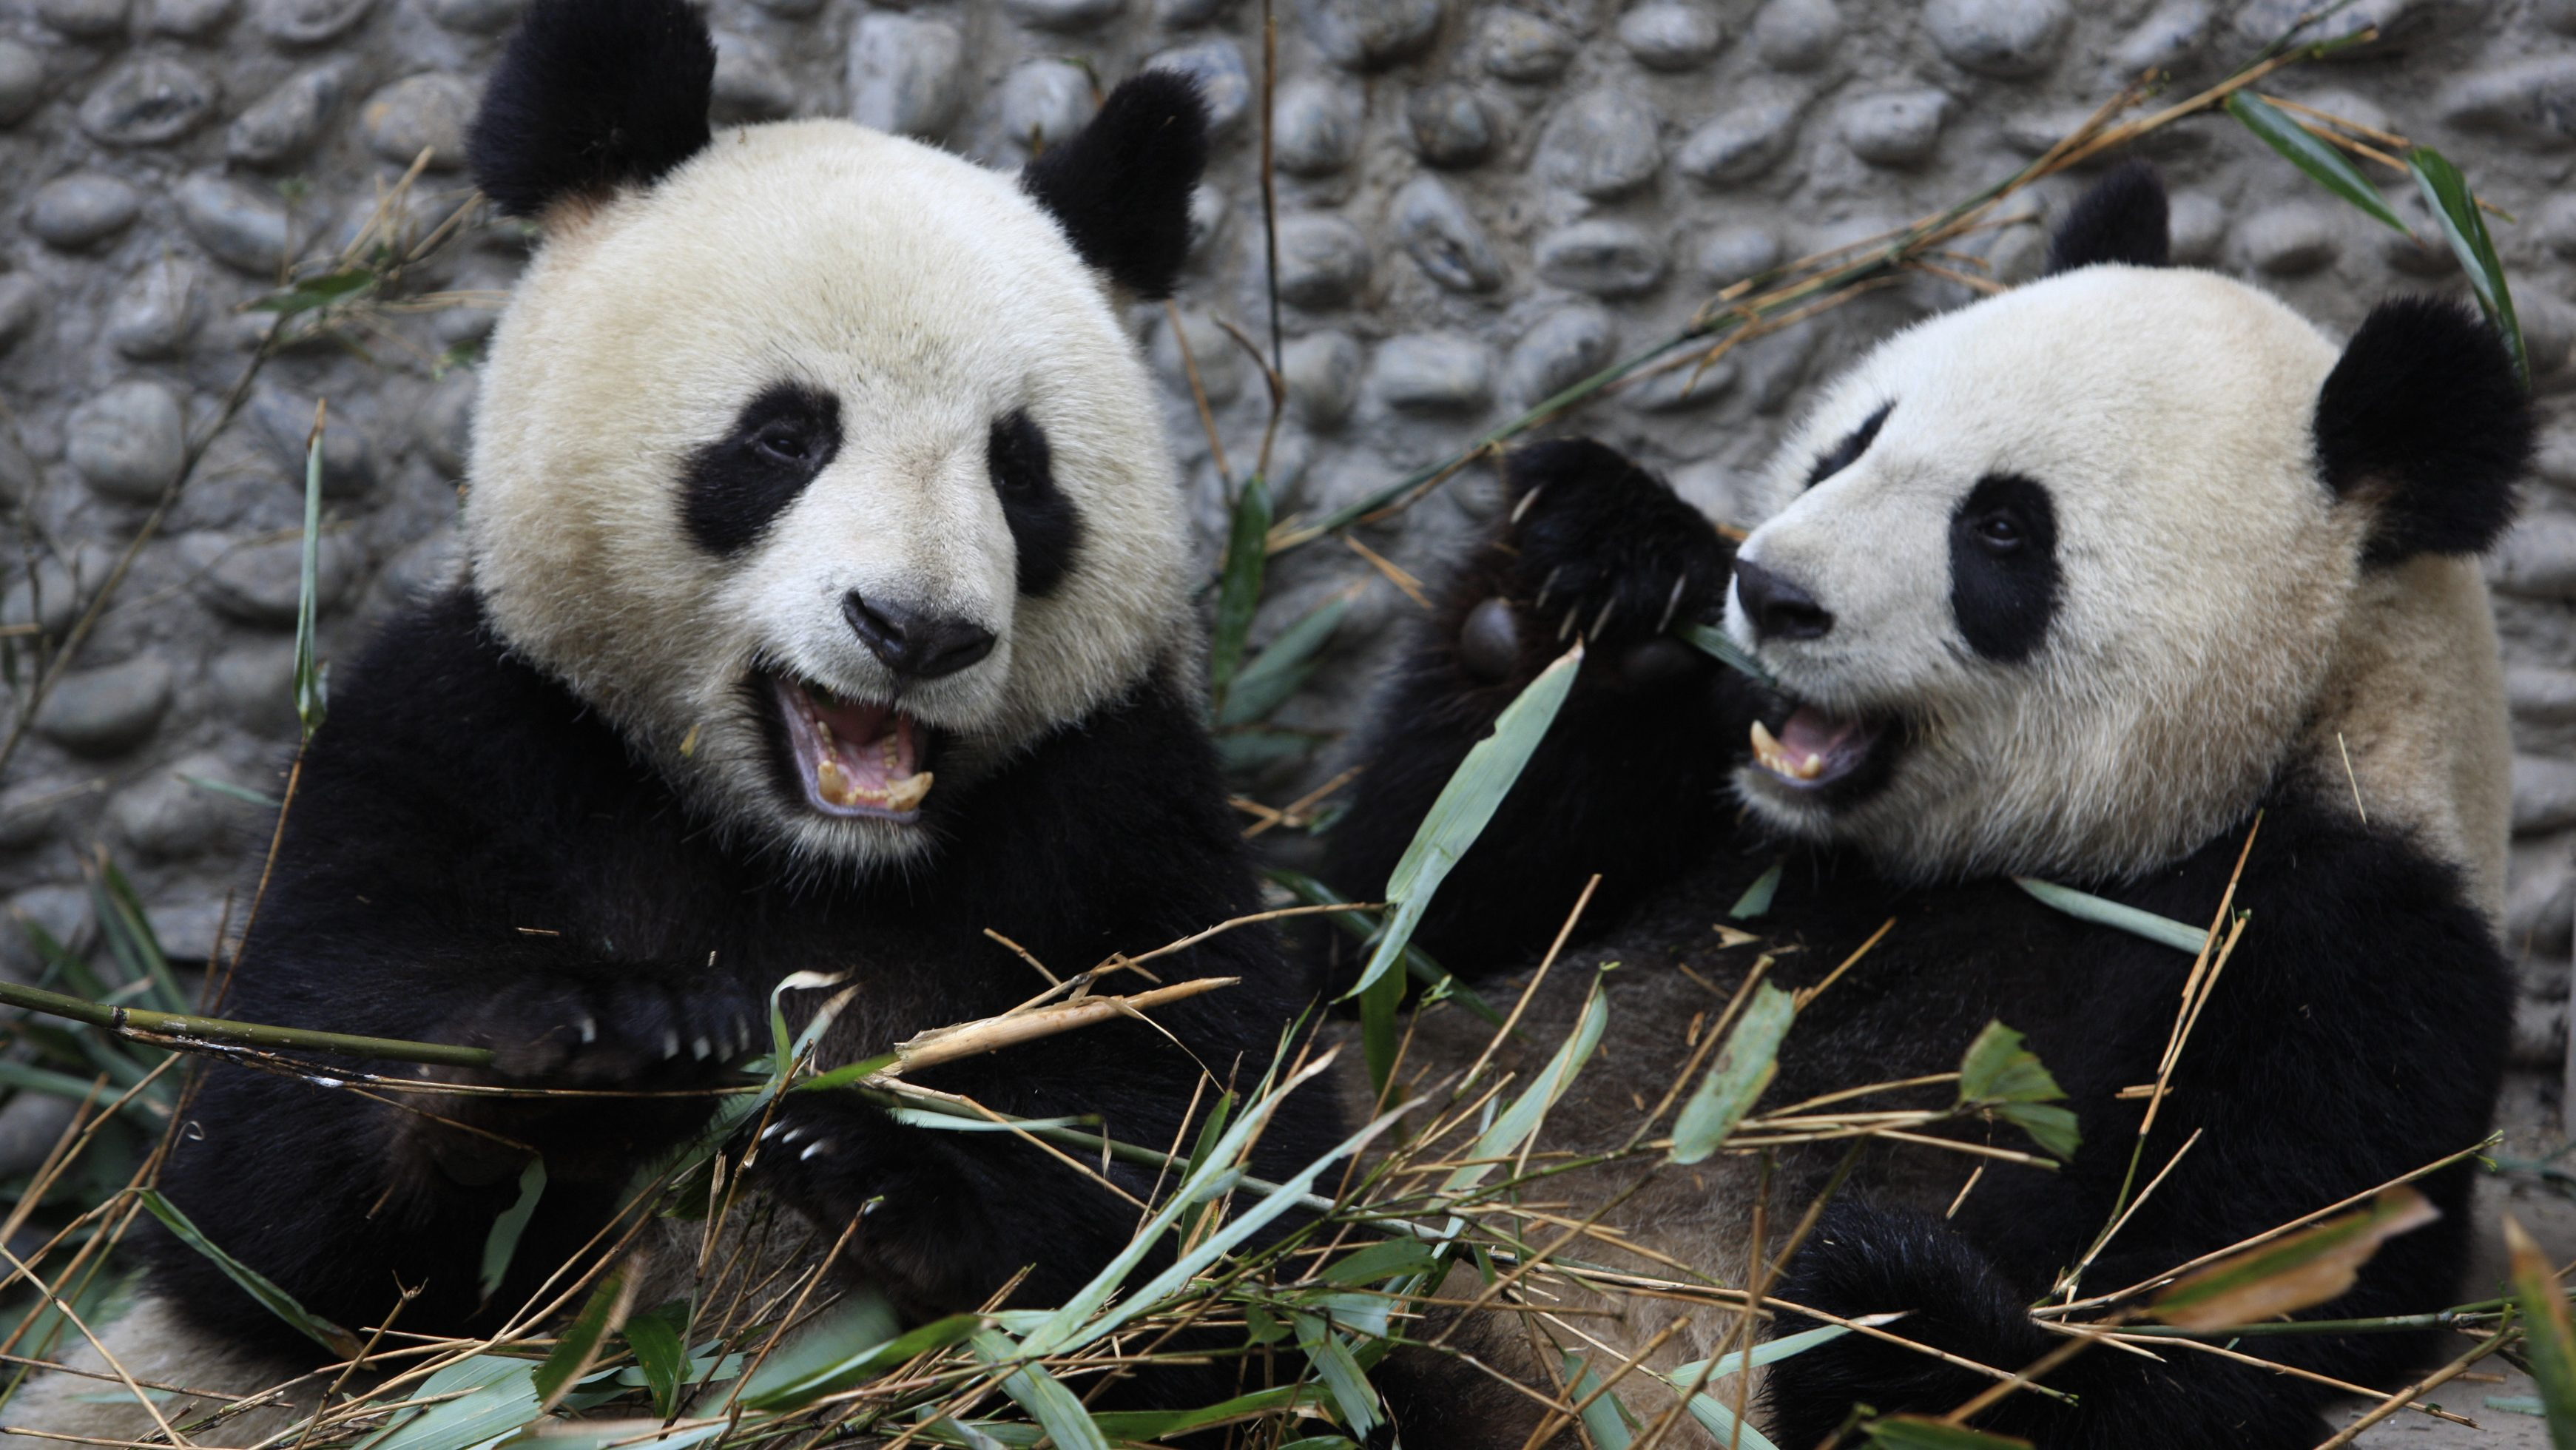 Giant Pandas Yuan Zai (L) and Huan Huan eat bamboo branches at Chengdu Research Base of Giant Panda breeding in Chengdu, Sichuan province January 9, 2012. The two giant pandas will be loaned to ZooParc de Beauval in France on January 15, 2012. Picture taken January 9, 2012.